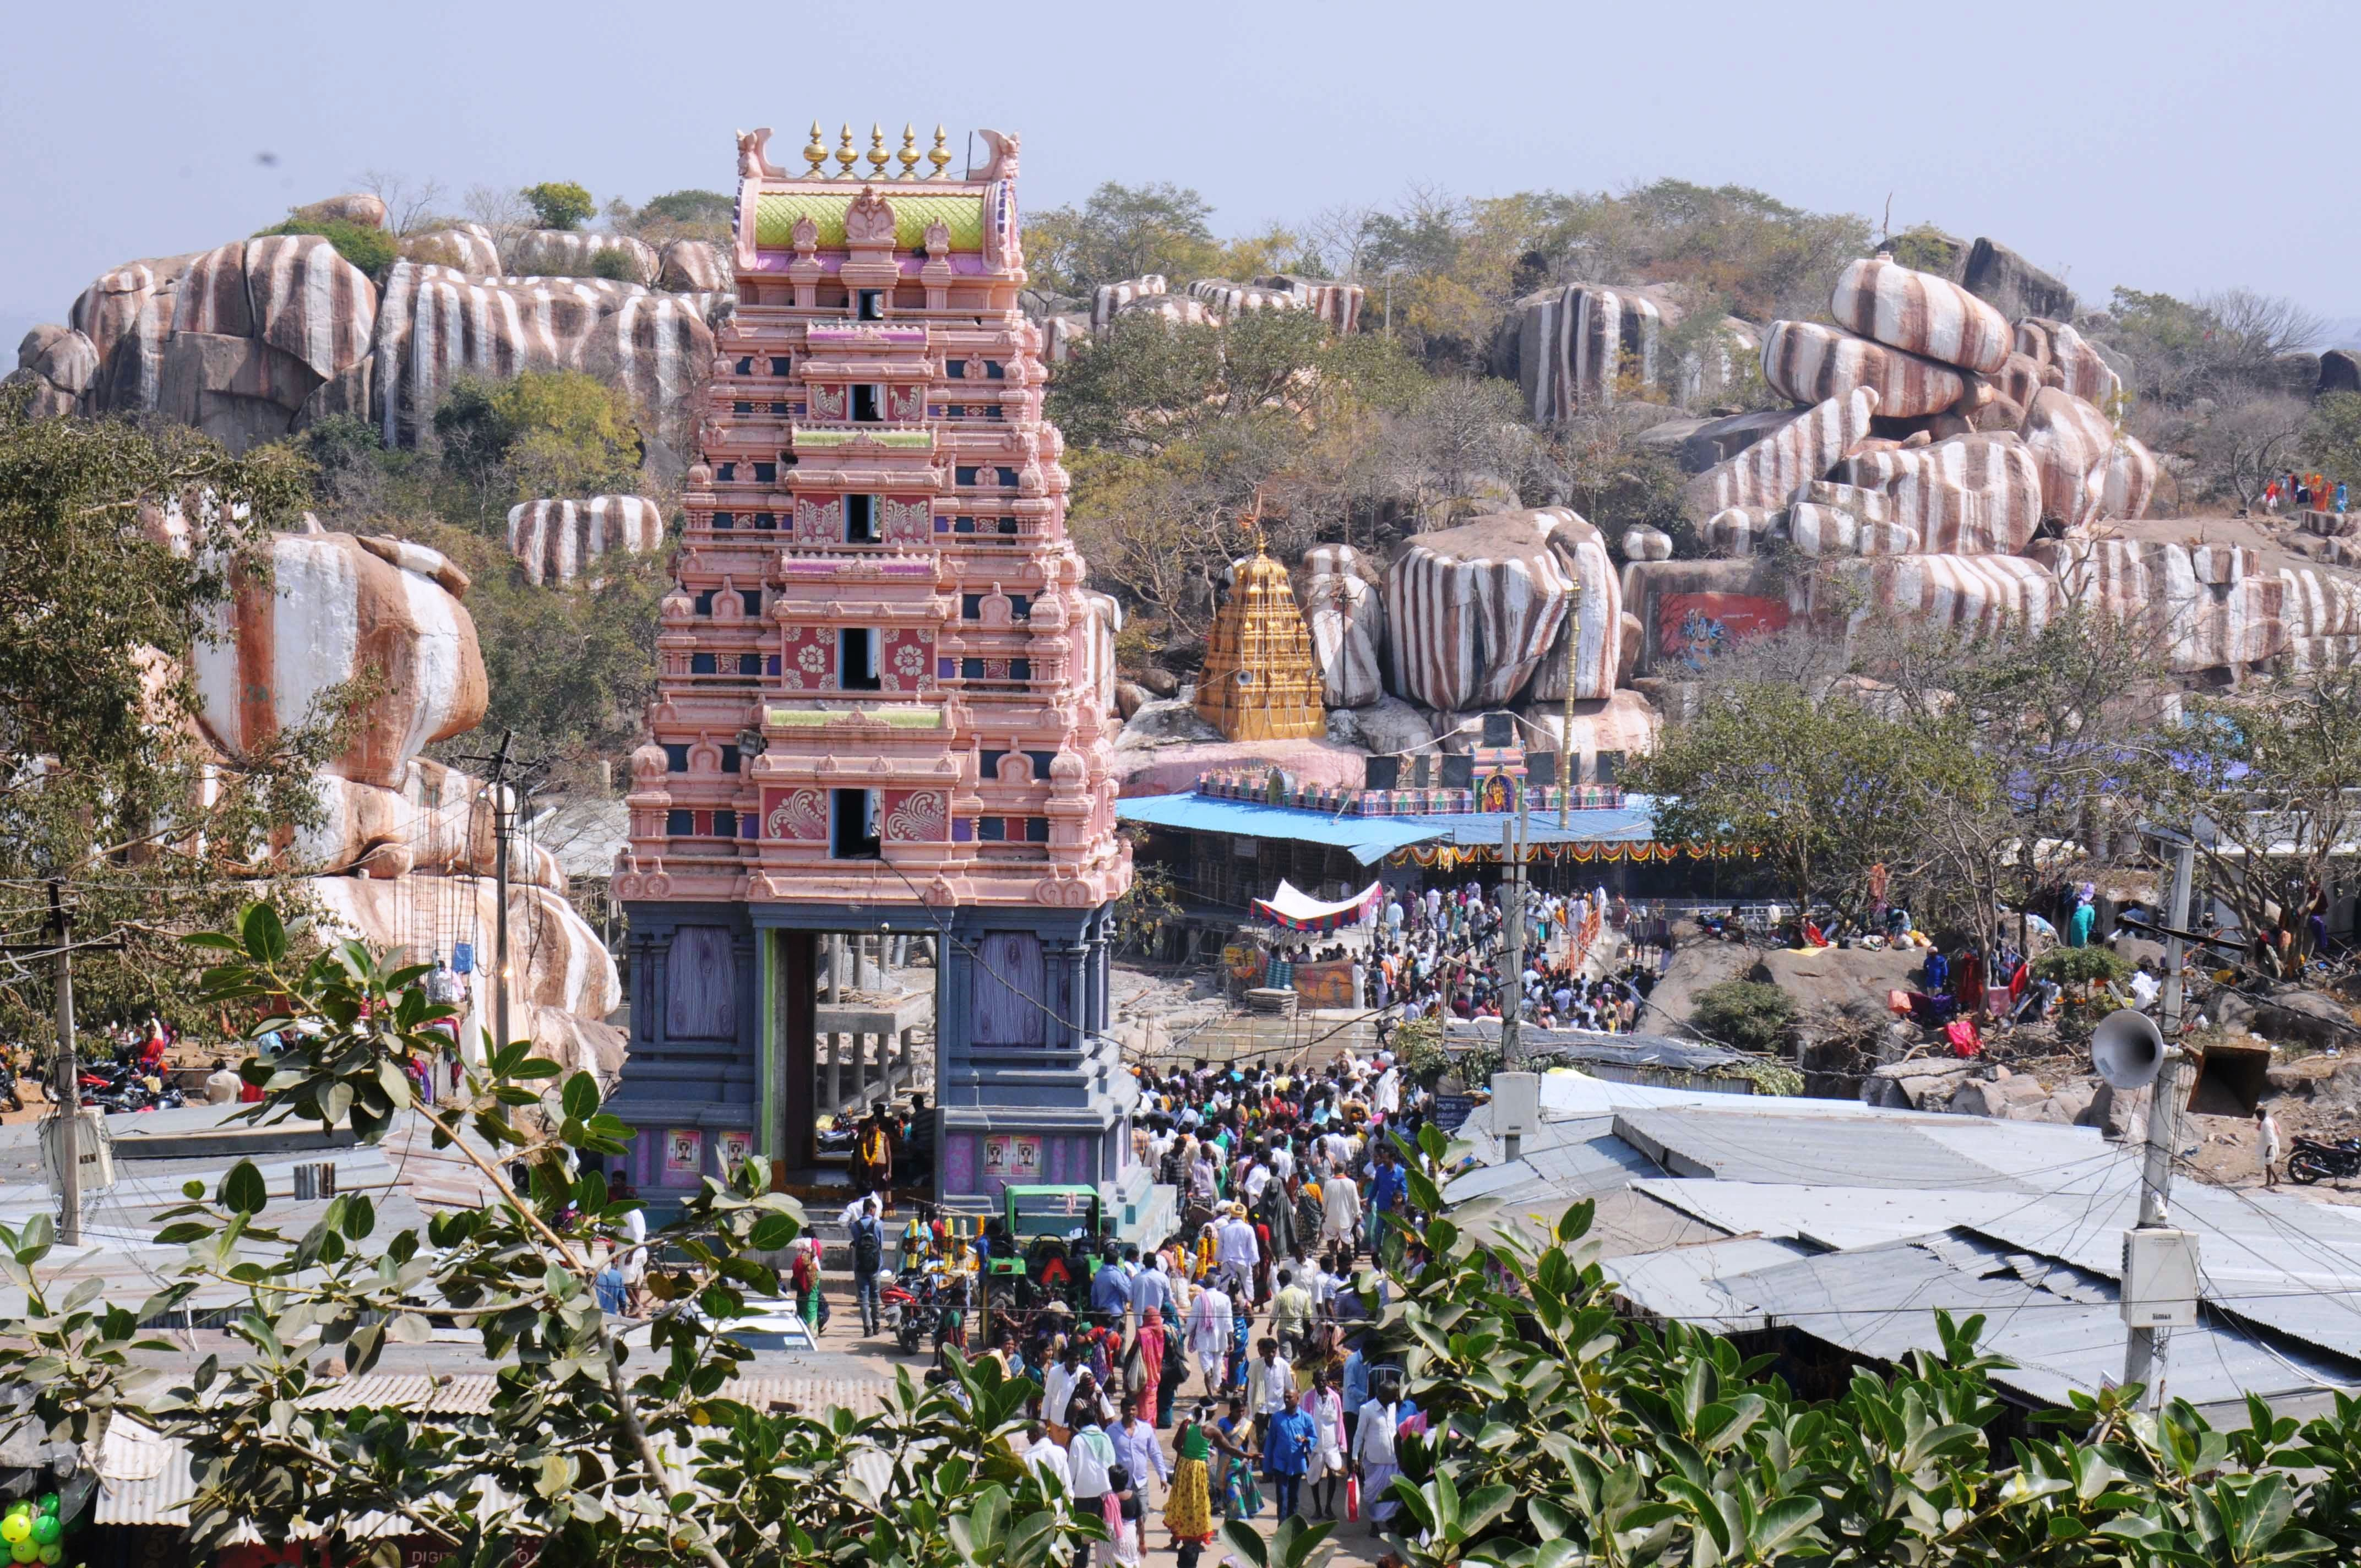 Hire a car and driver in Medak